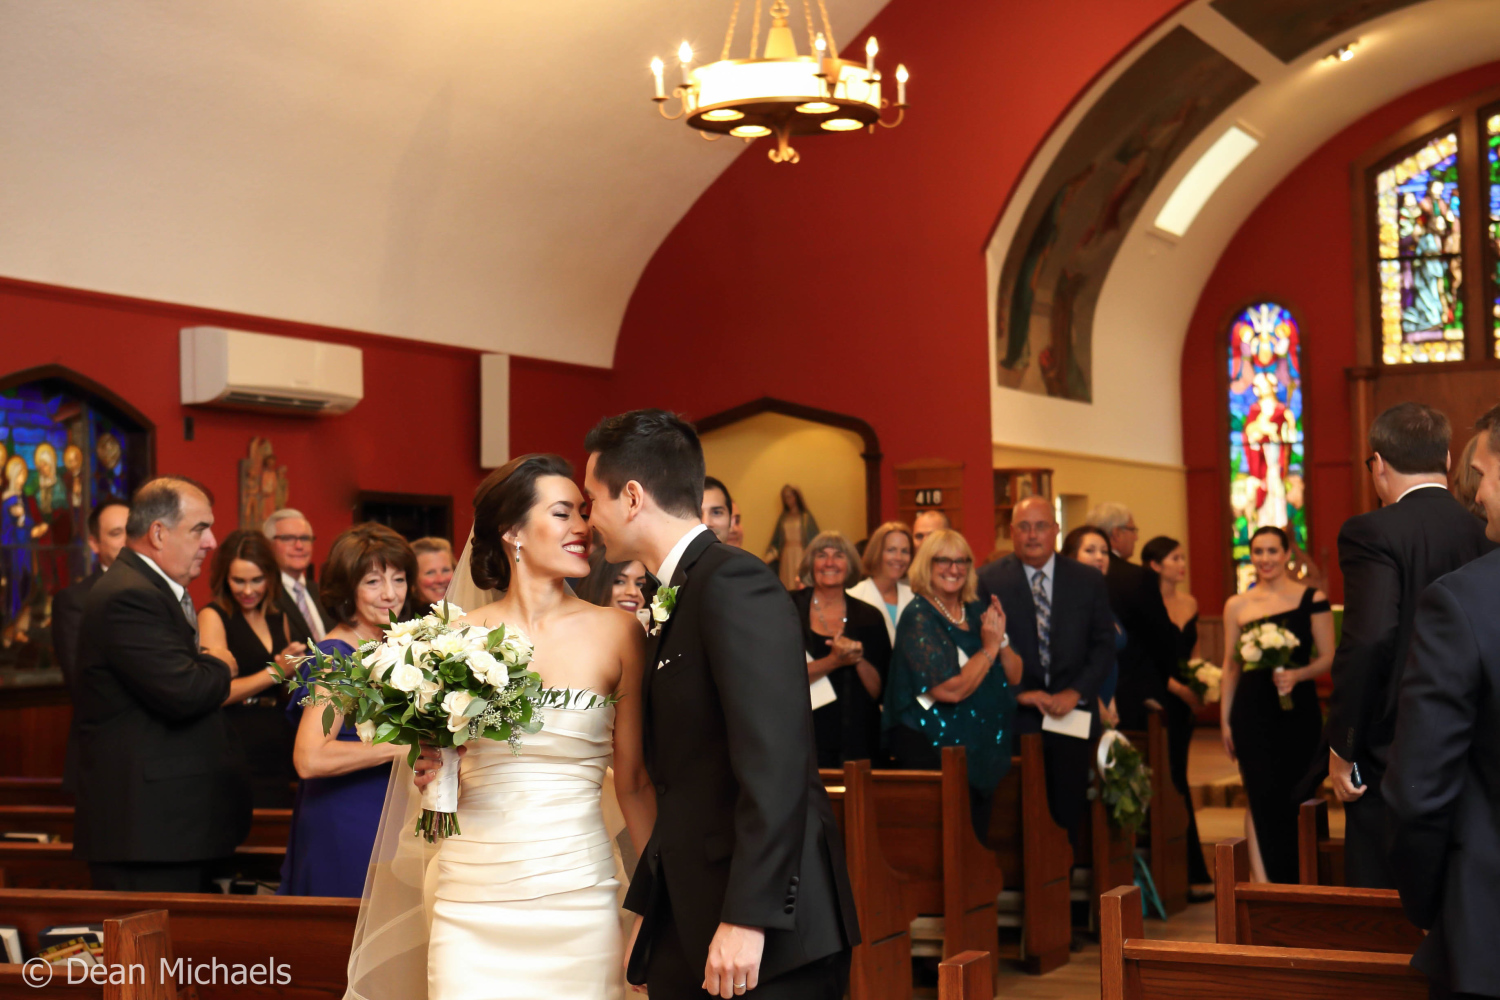 wedding-photographer-gallery-2-QD4H4CLQDL6C.jpg